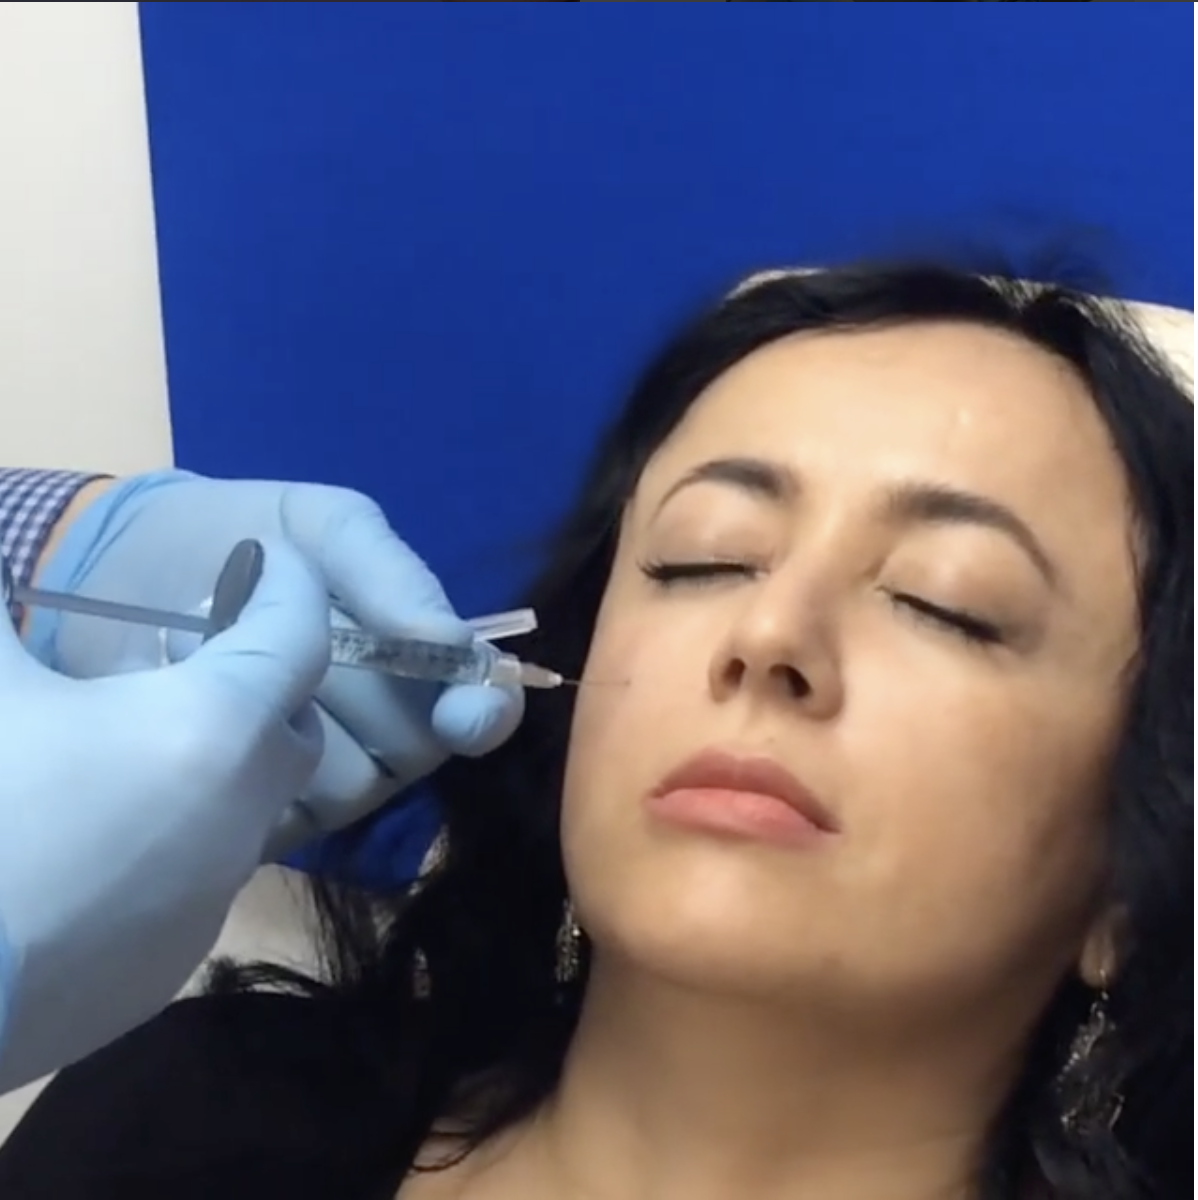 Dr Kopelman injects Voluma for mid face volume